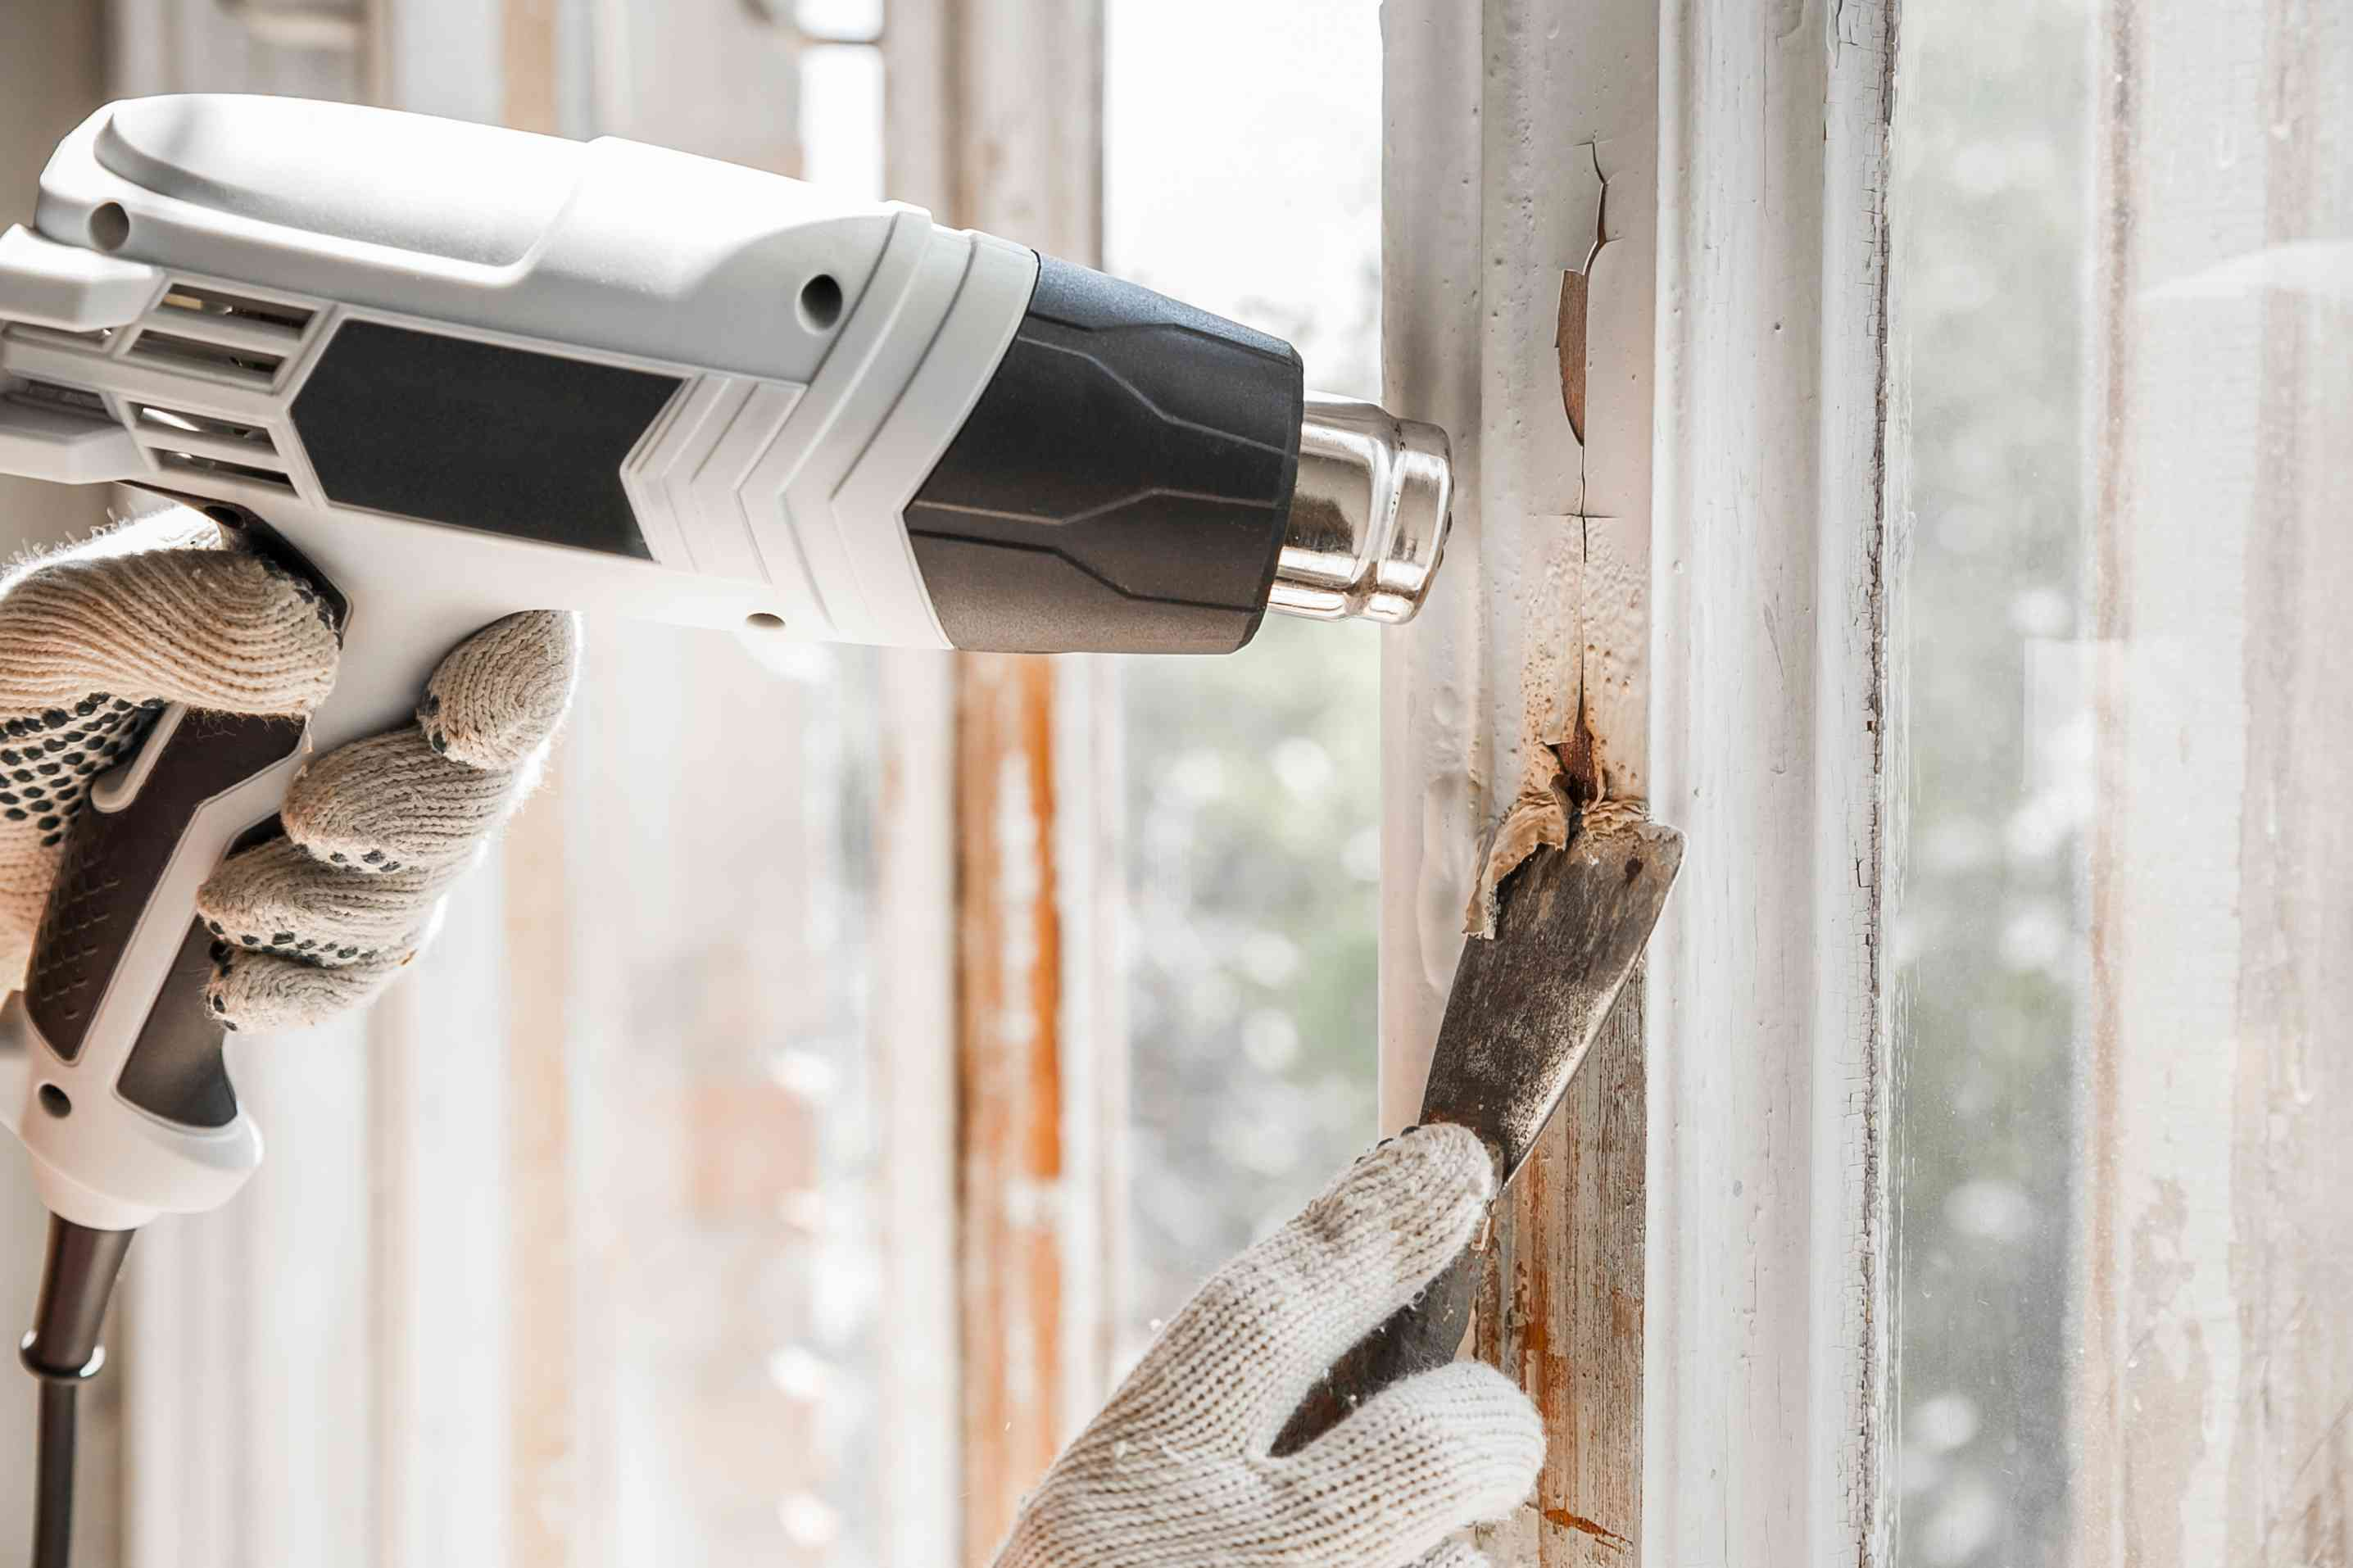 person removing old paint from a window with a heat gun and scraper